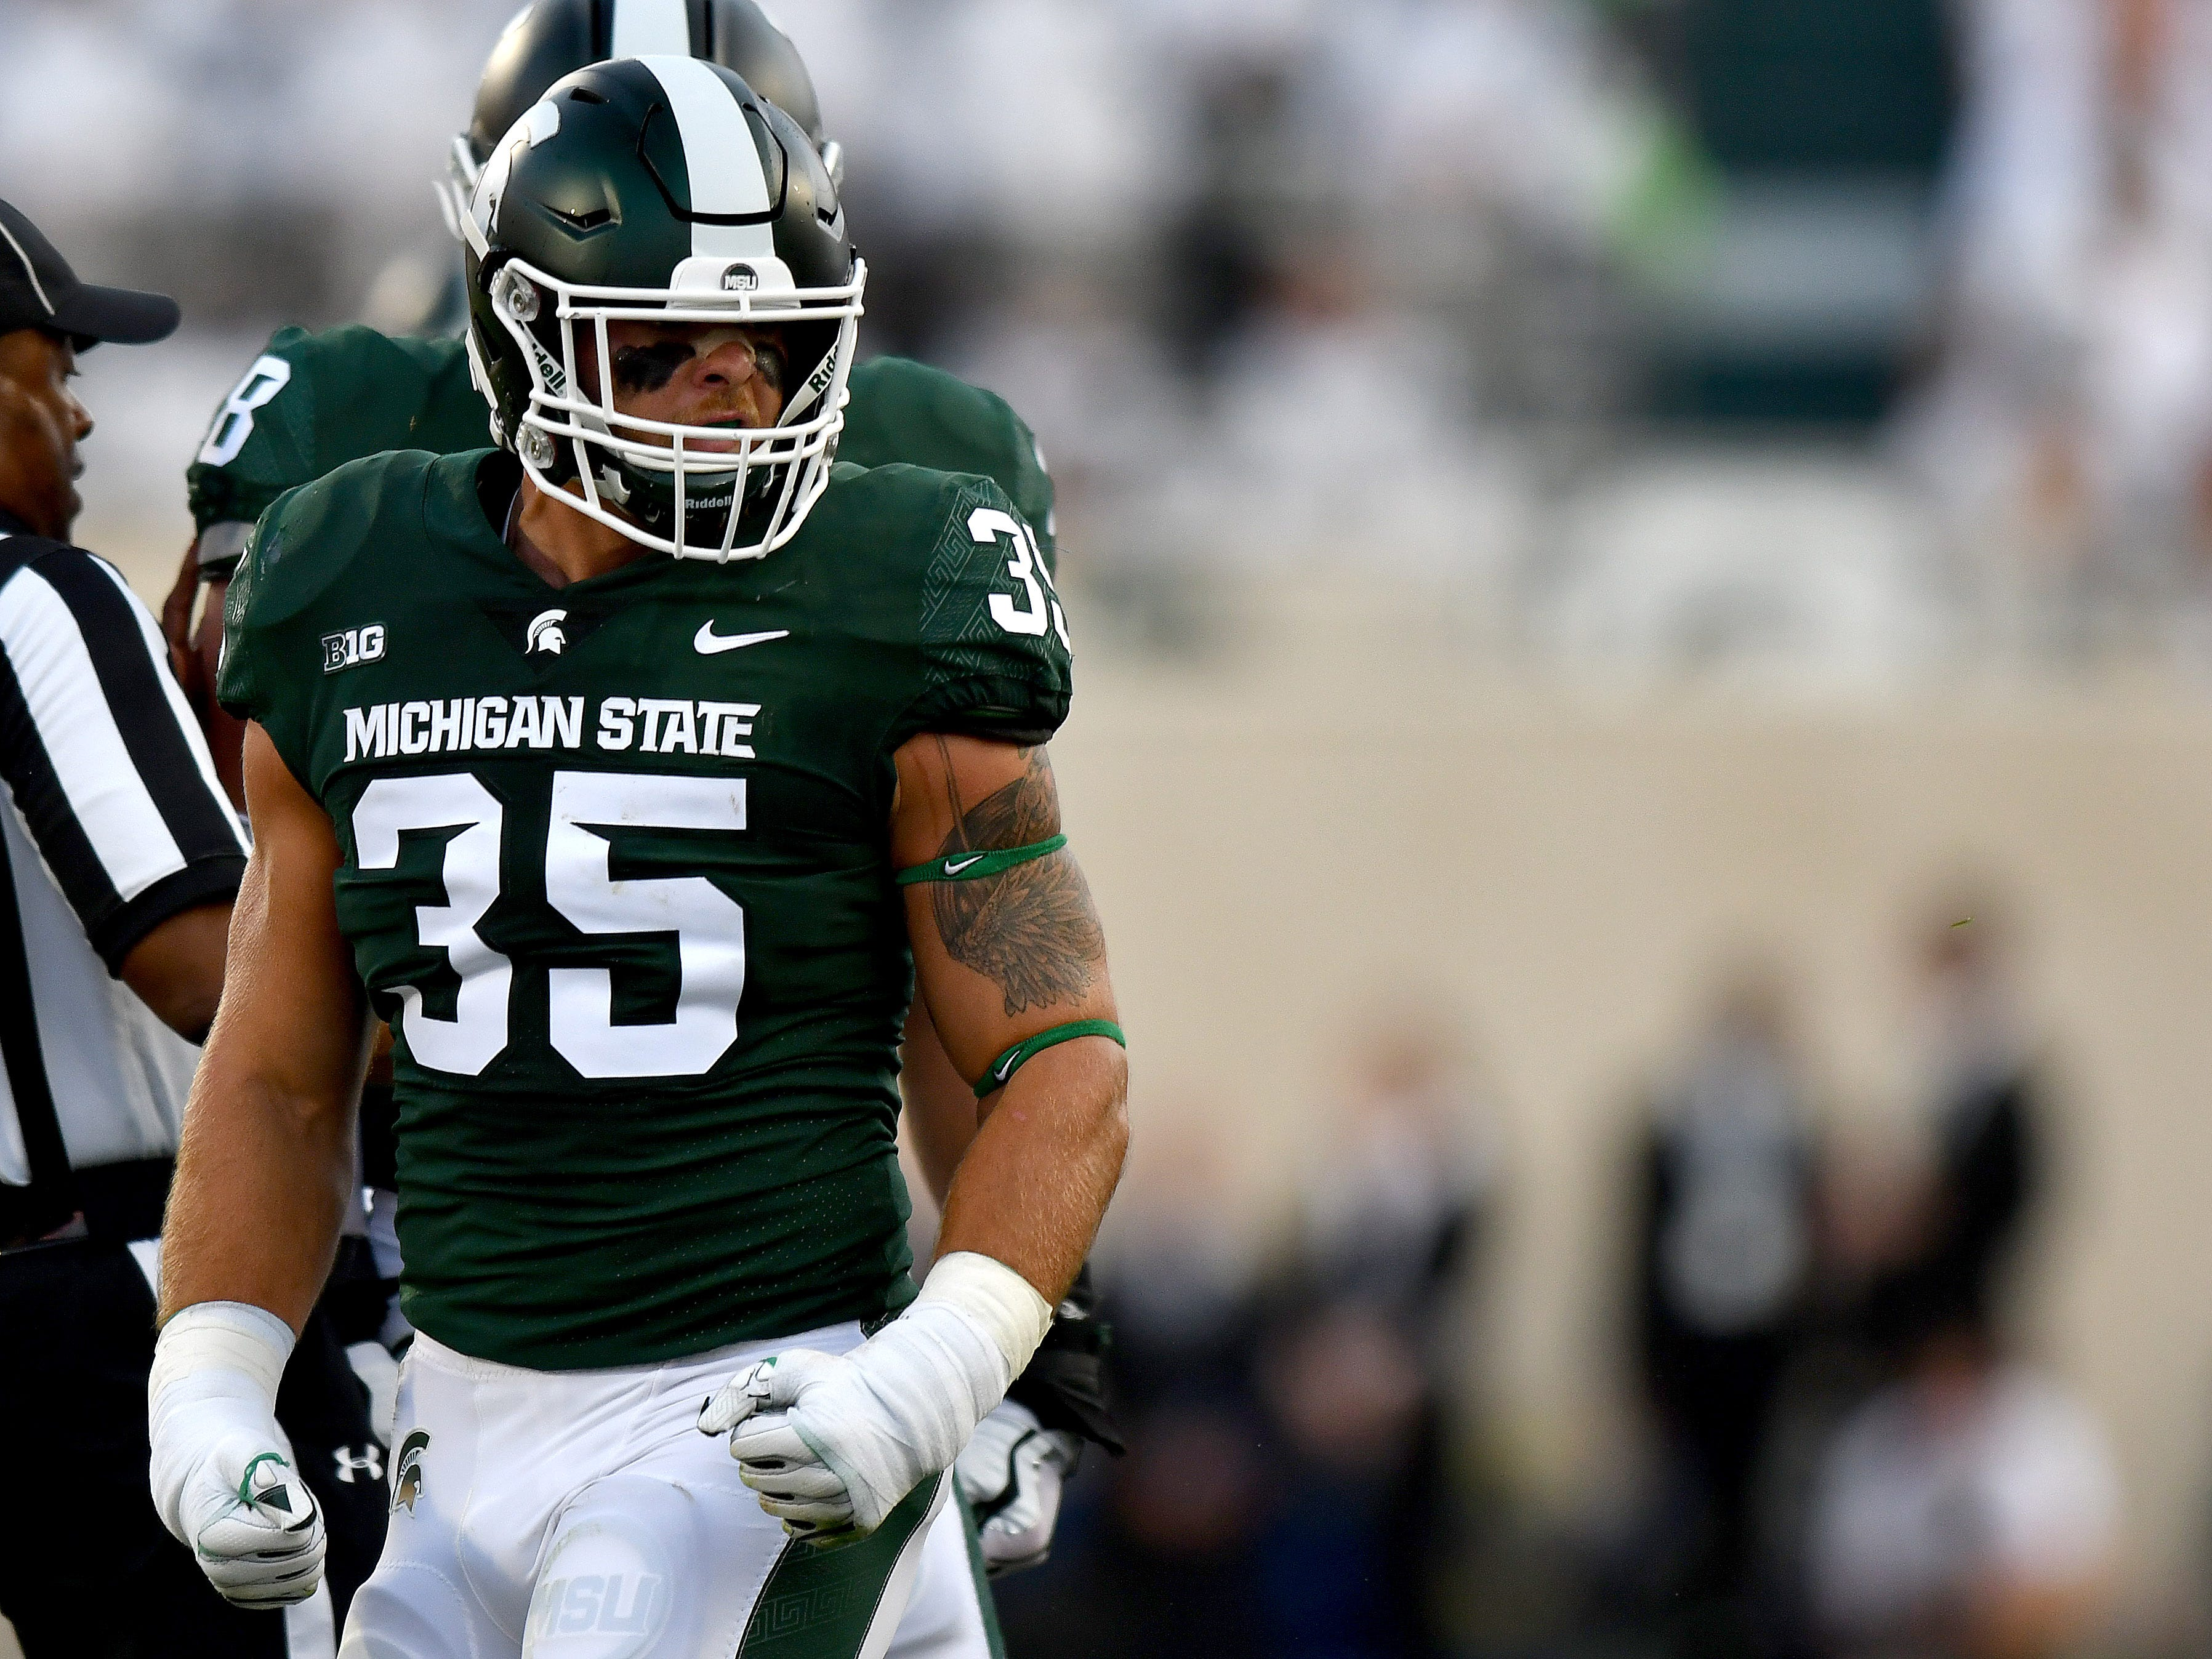 MIKE LINEBACKER: Joe Bachie – He opted to return for his senior season after recording 102 tackles and earning first-team All-Big Ten honors last season that resulted in Bachie being named MSU's top defensive player. He has 214 career tackles with four interceptions, seven pass break-ups and five forced fumbles.